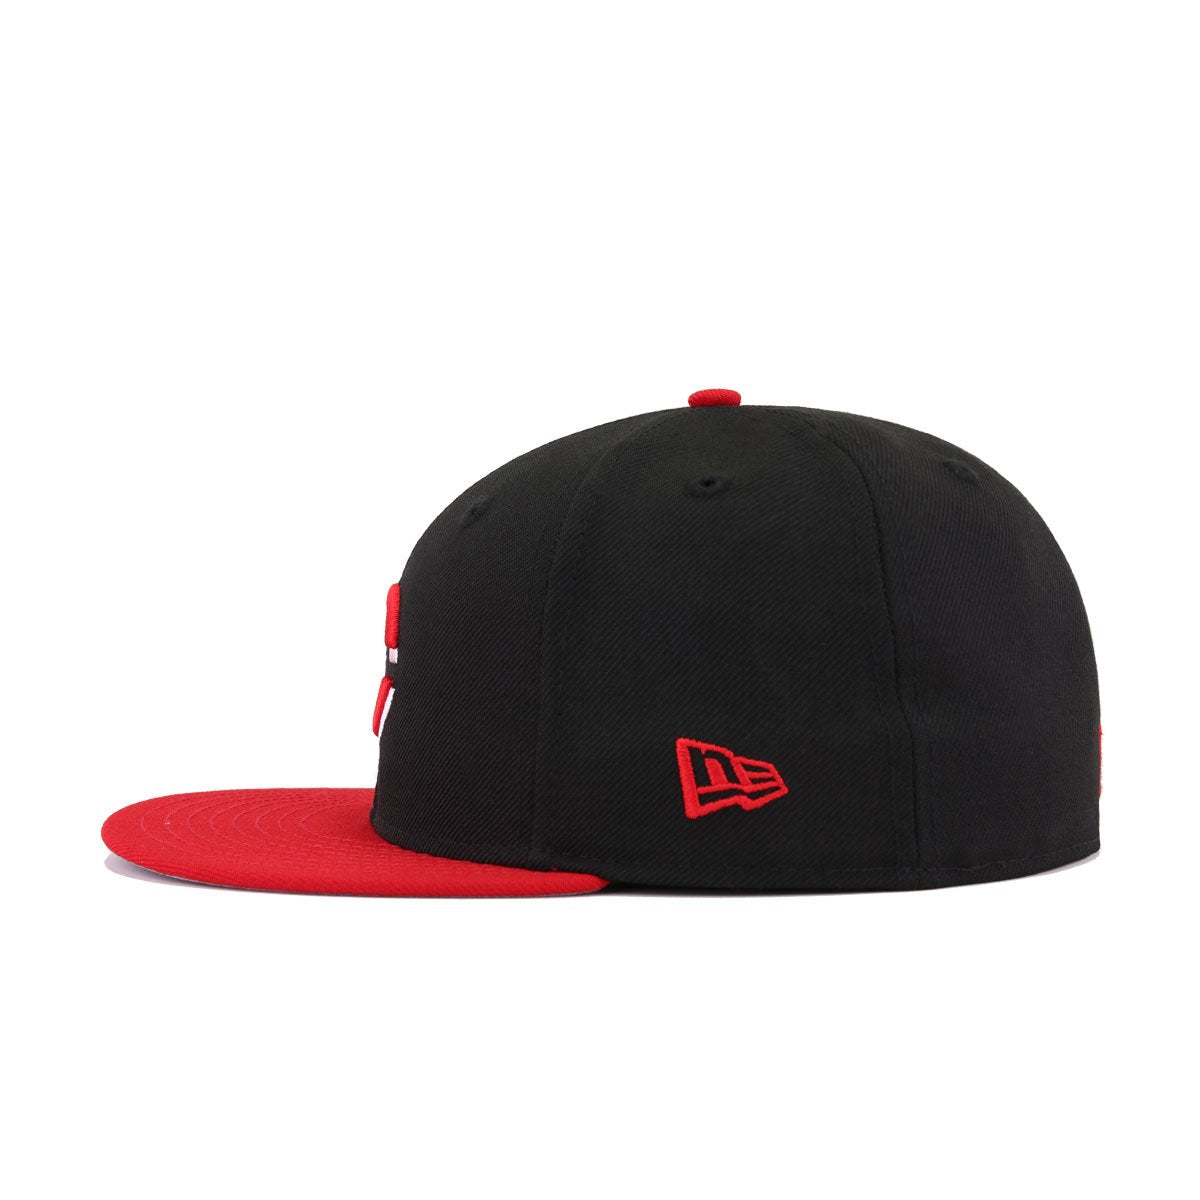 Cincinnati Reds Black Scarlet 1990 World Series Cooperstown New Era 59Fifty Fitted